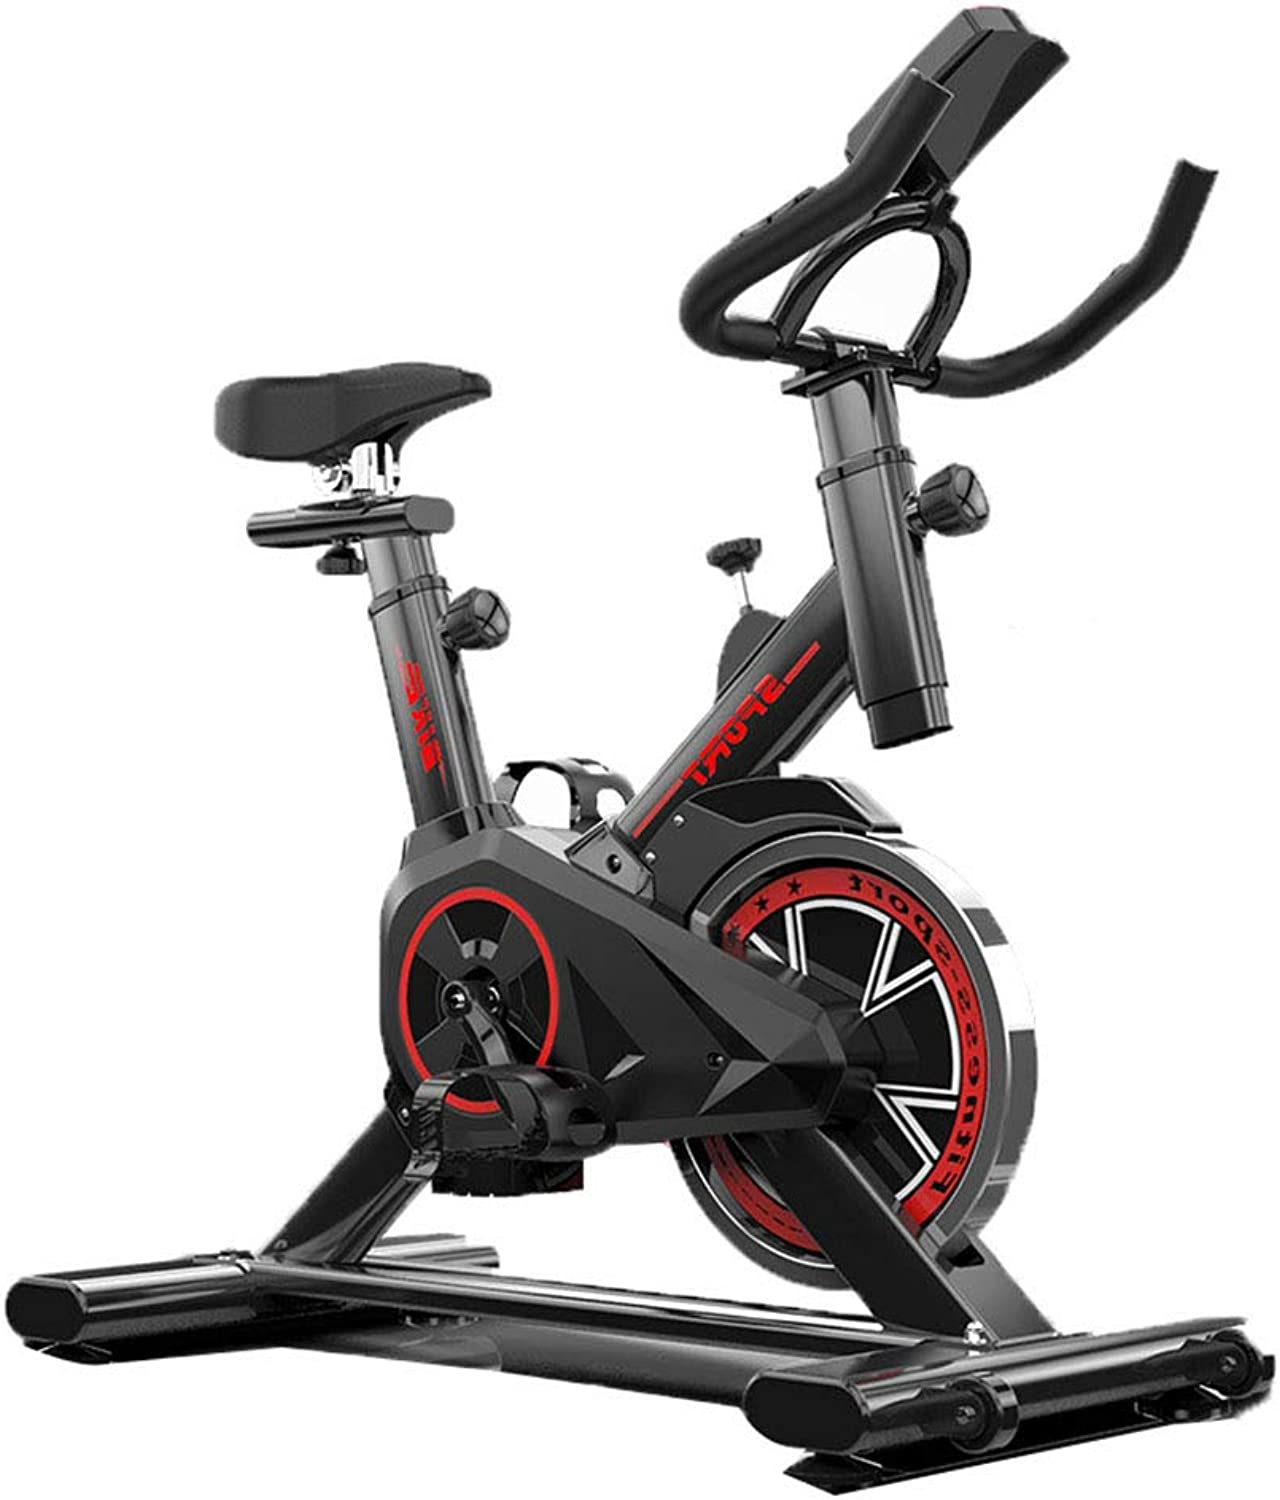 Indoor Exercise Bike, Cardio Workout Smooth Cycling, Adjustable Handlebars Seat, Heart Rate Sensors and On Board Computer Reads